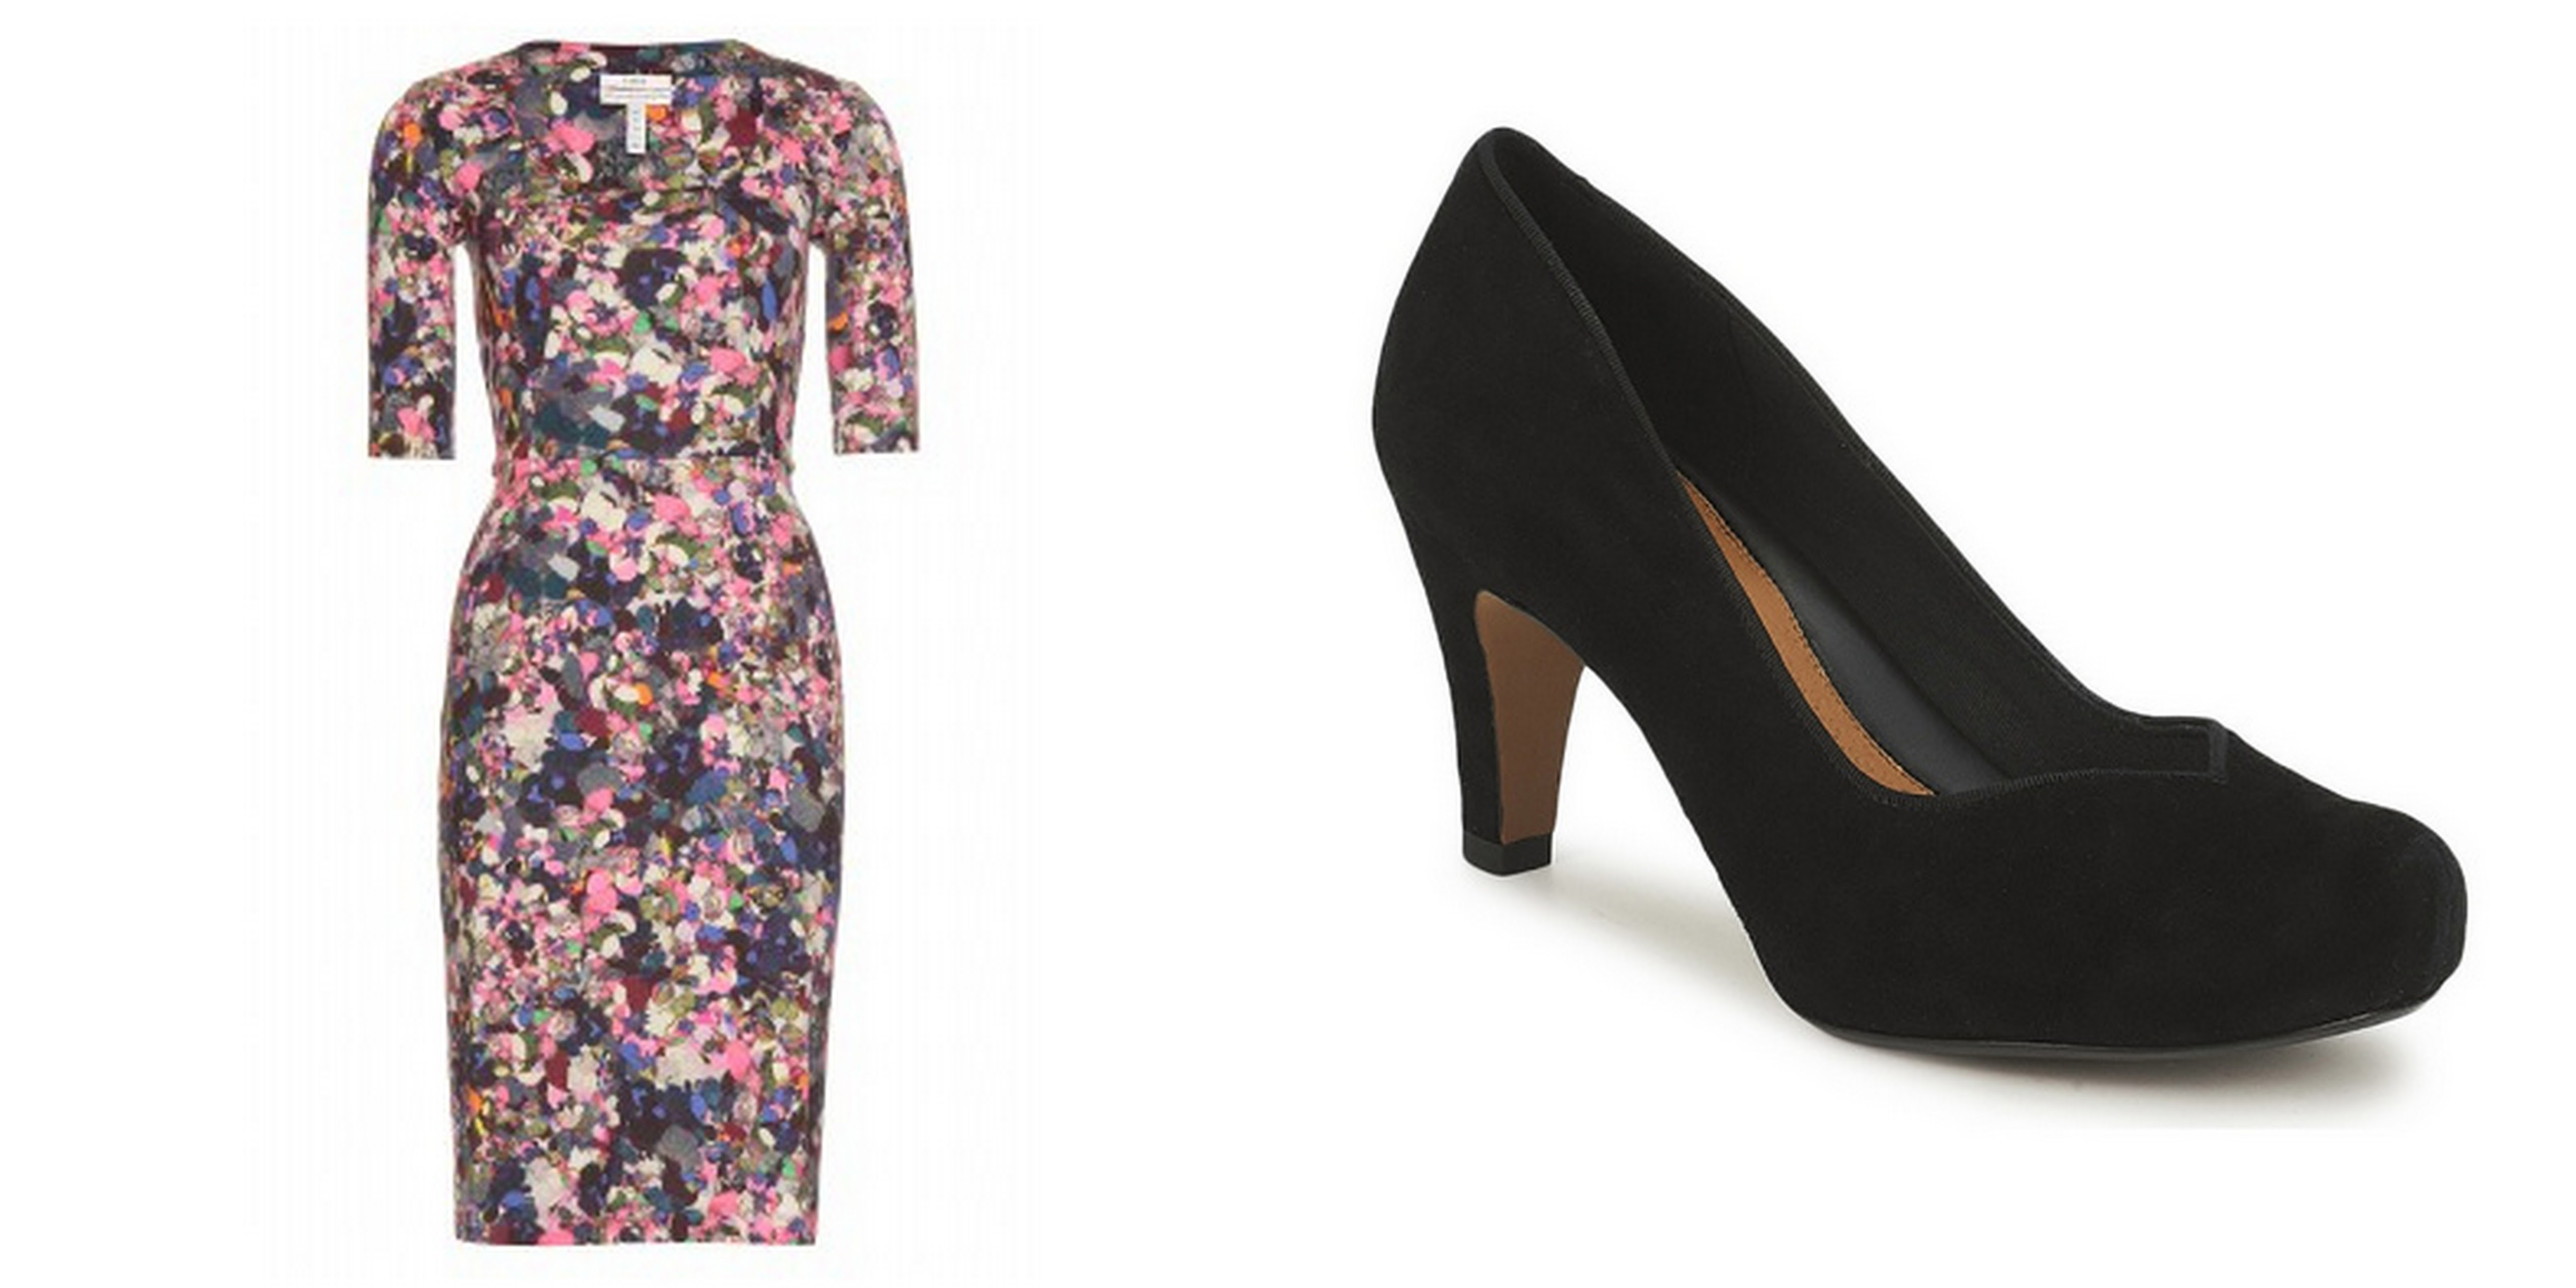 Erdem Dress and Clarks Shoes